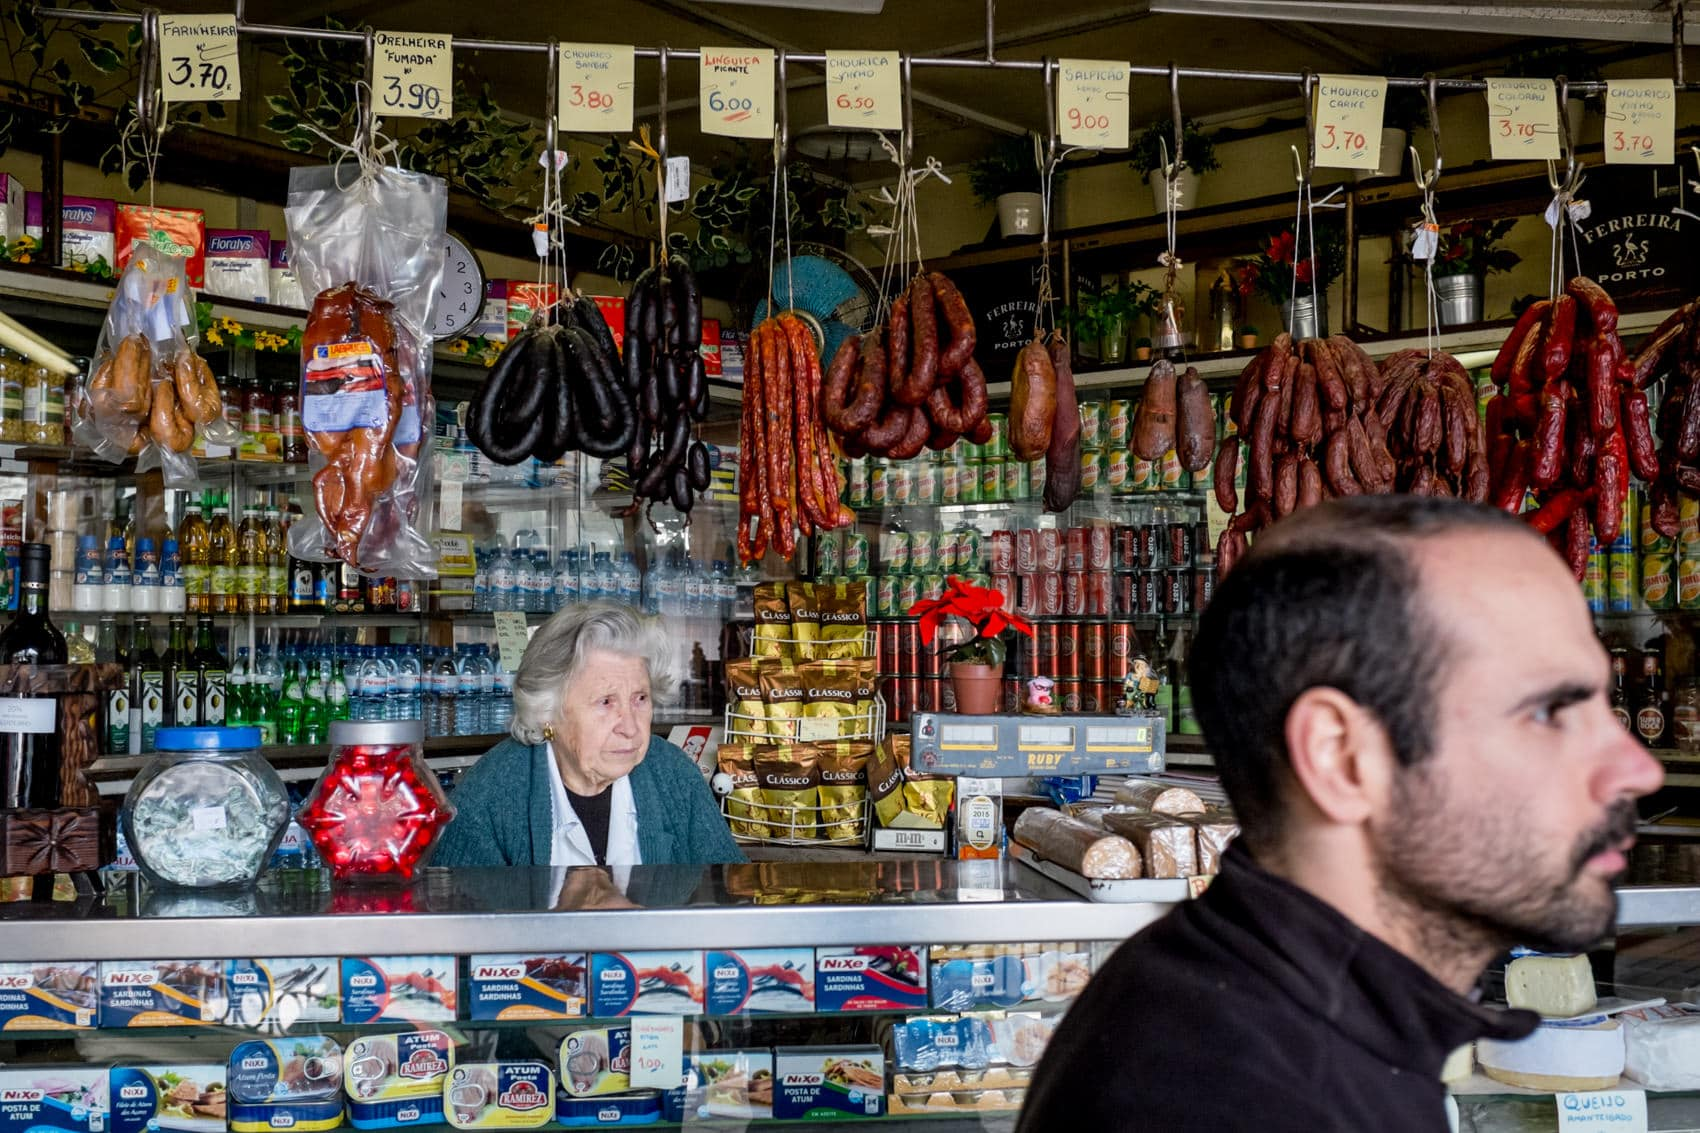 woman at her market stall in Mercado do Bolhao, Porto